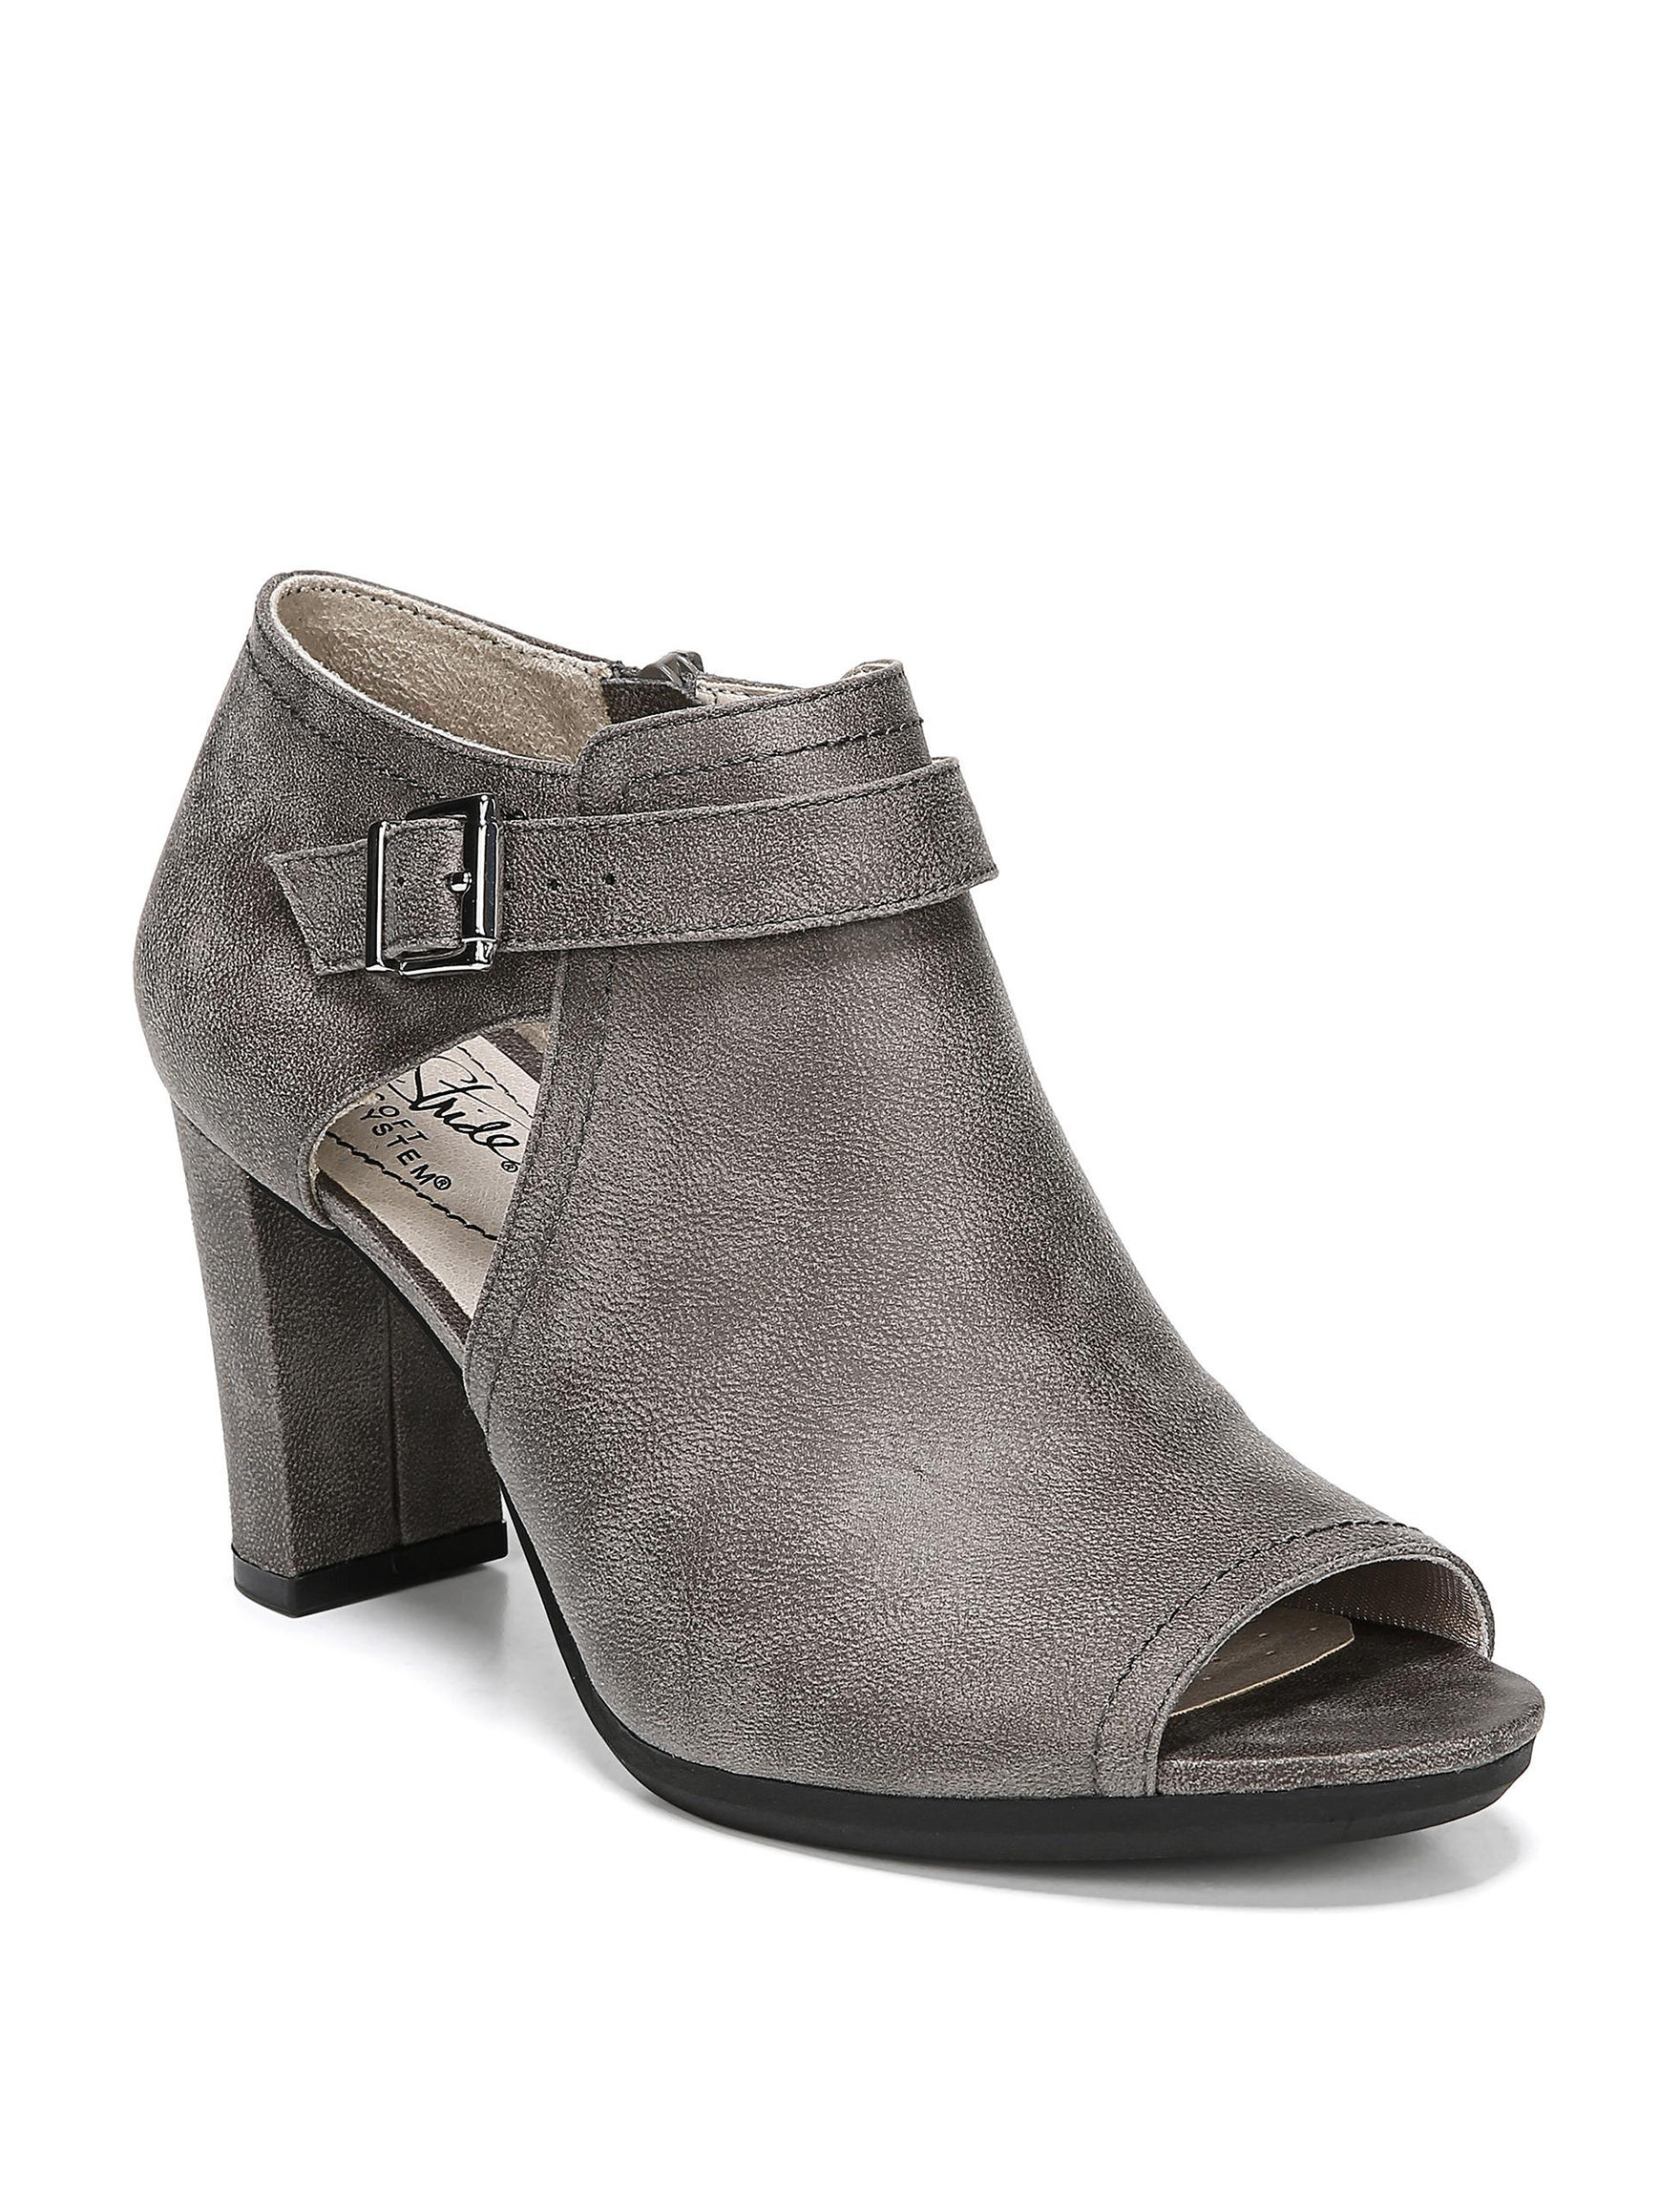 Lifestride Grey Ankle Boots & Booties Peep Toe